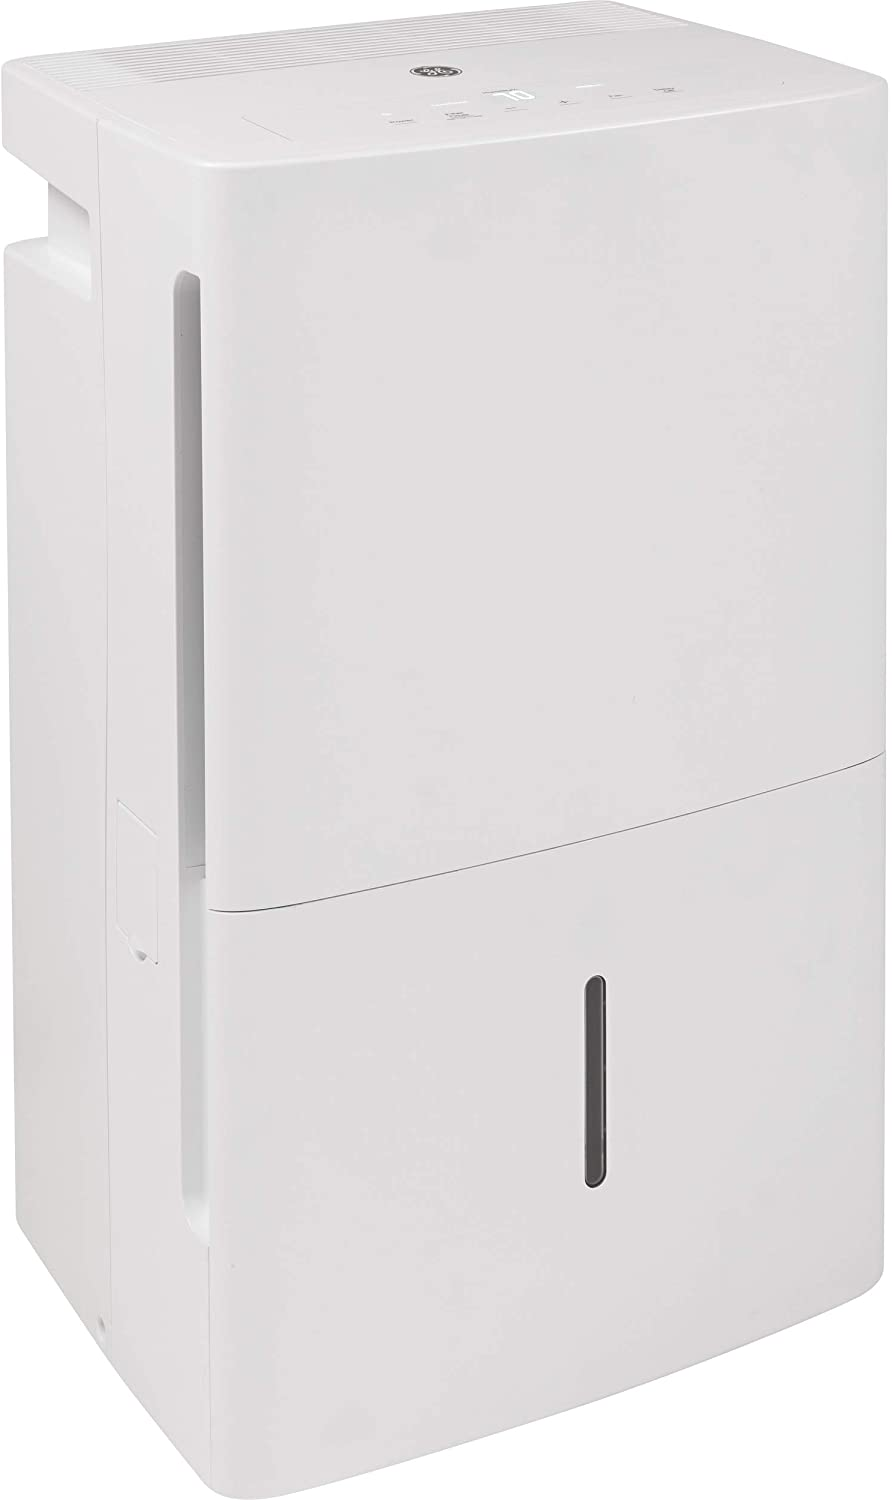 GE ADEL35LZ-GE 35 Pint Energy Star Dehumidifier with Digital Controls for Very Damp Rooms, White